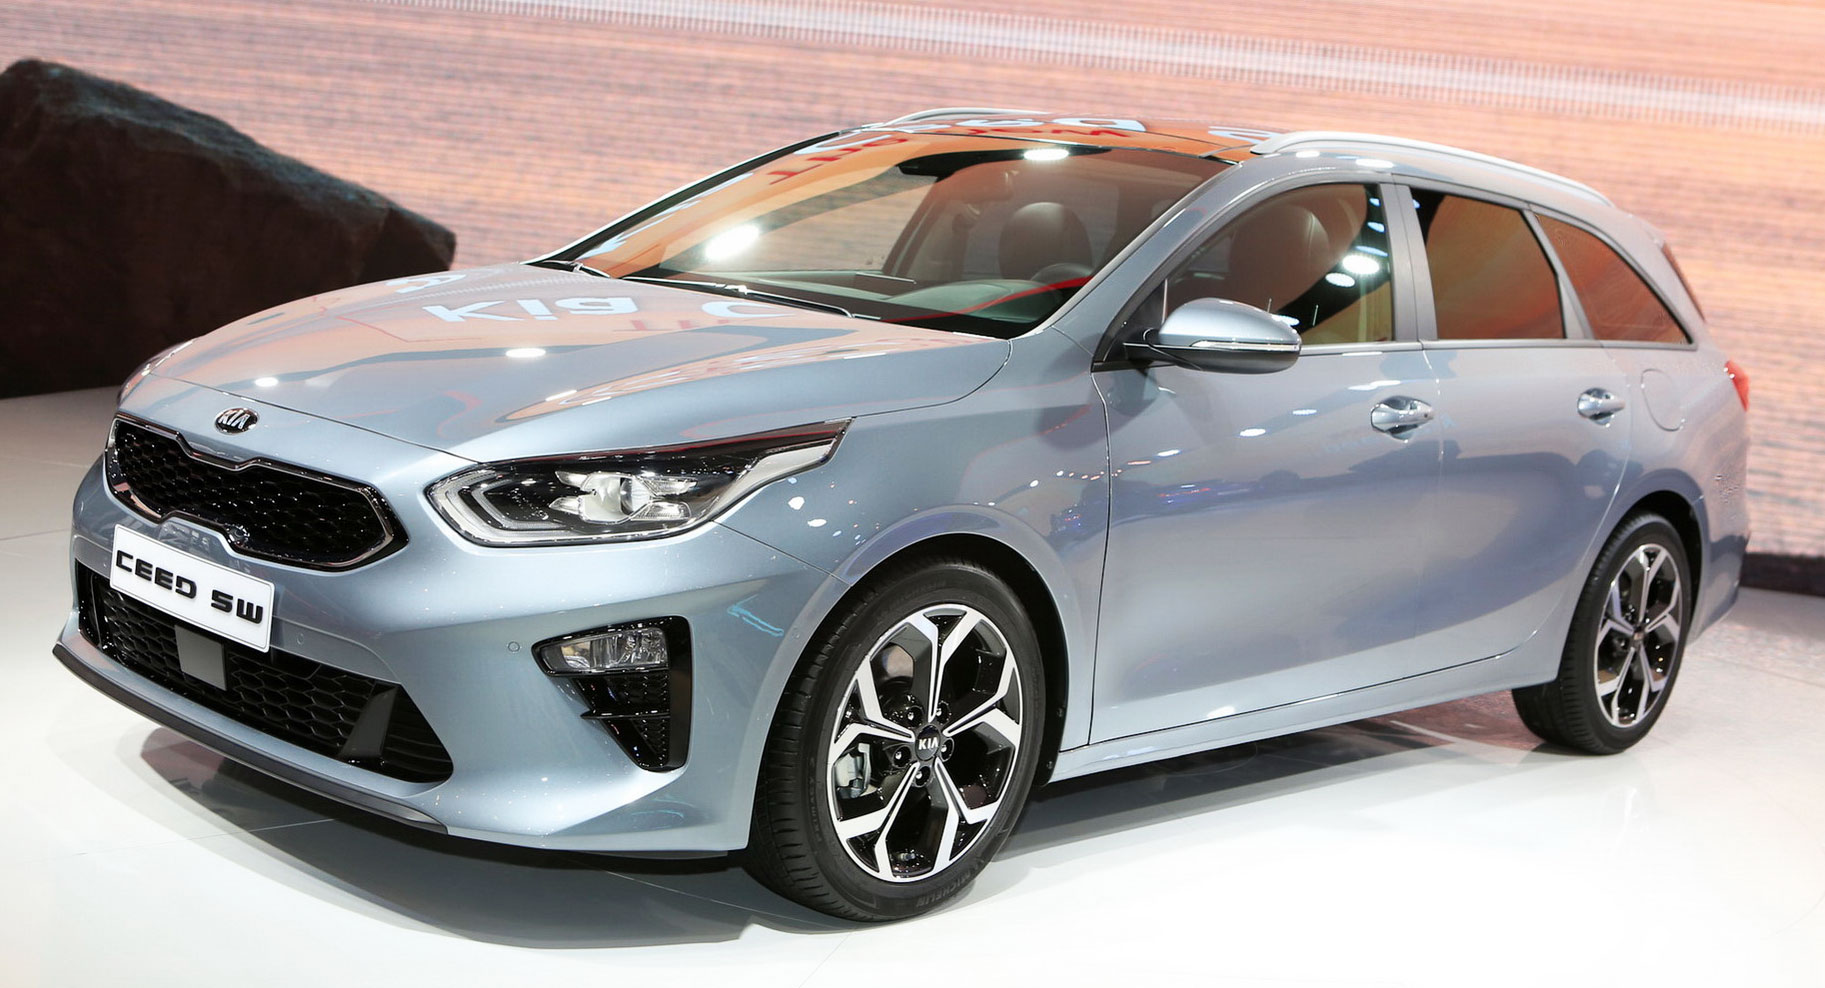 2019 kia ceed sportswagon is more mature has igger booty carscoops. Black Bedroom Furniture Sets. Home Design Ideas